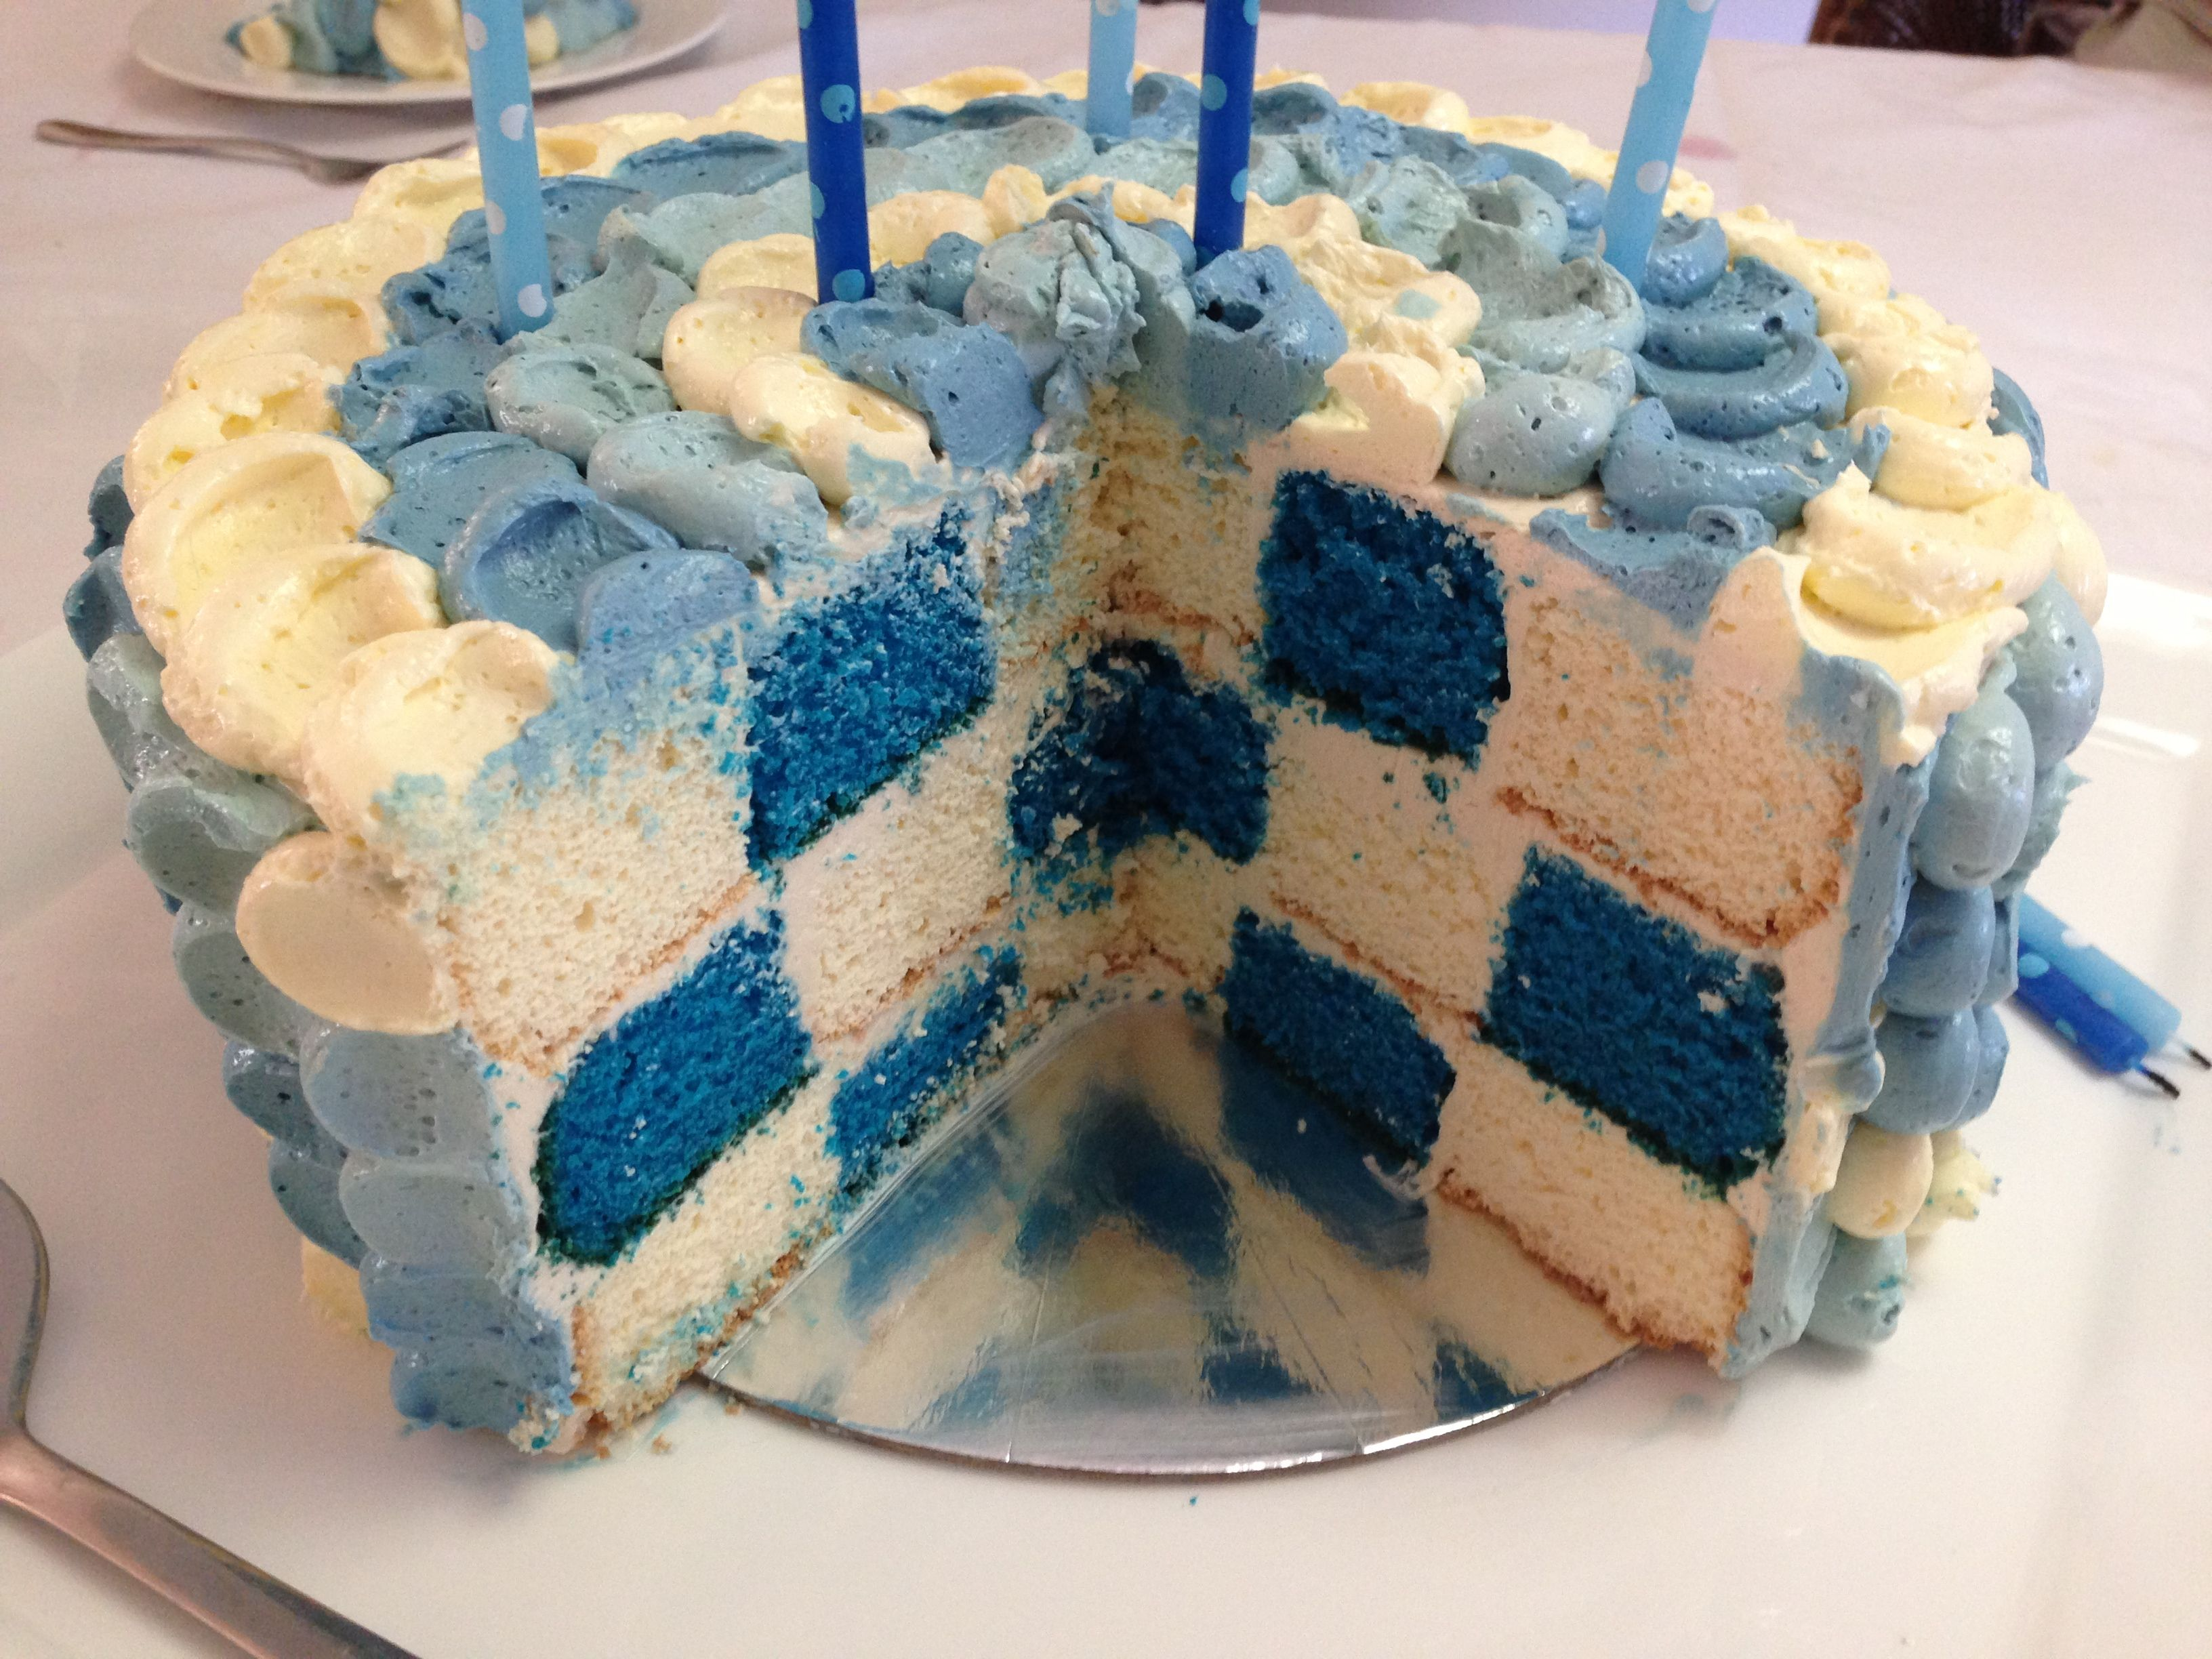 Cake Decorating Pampered Chef : Checkerboard Designs on Pinterest The Pampered Chef ...